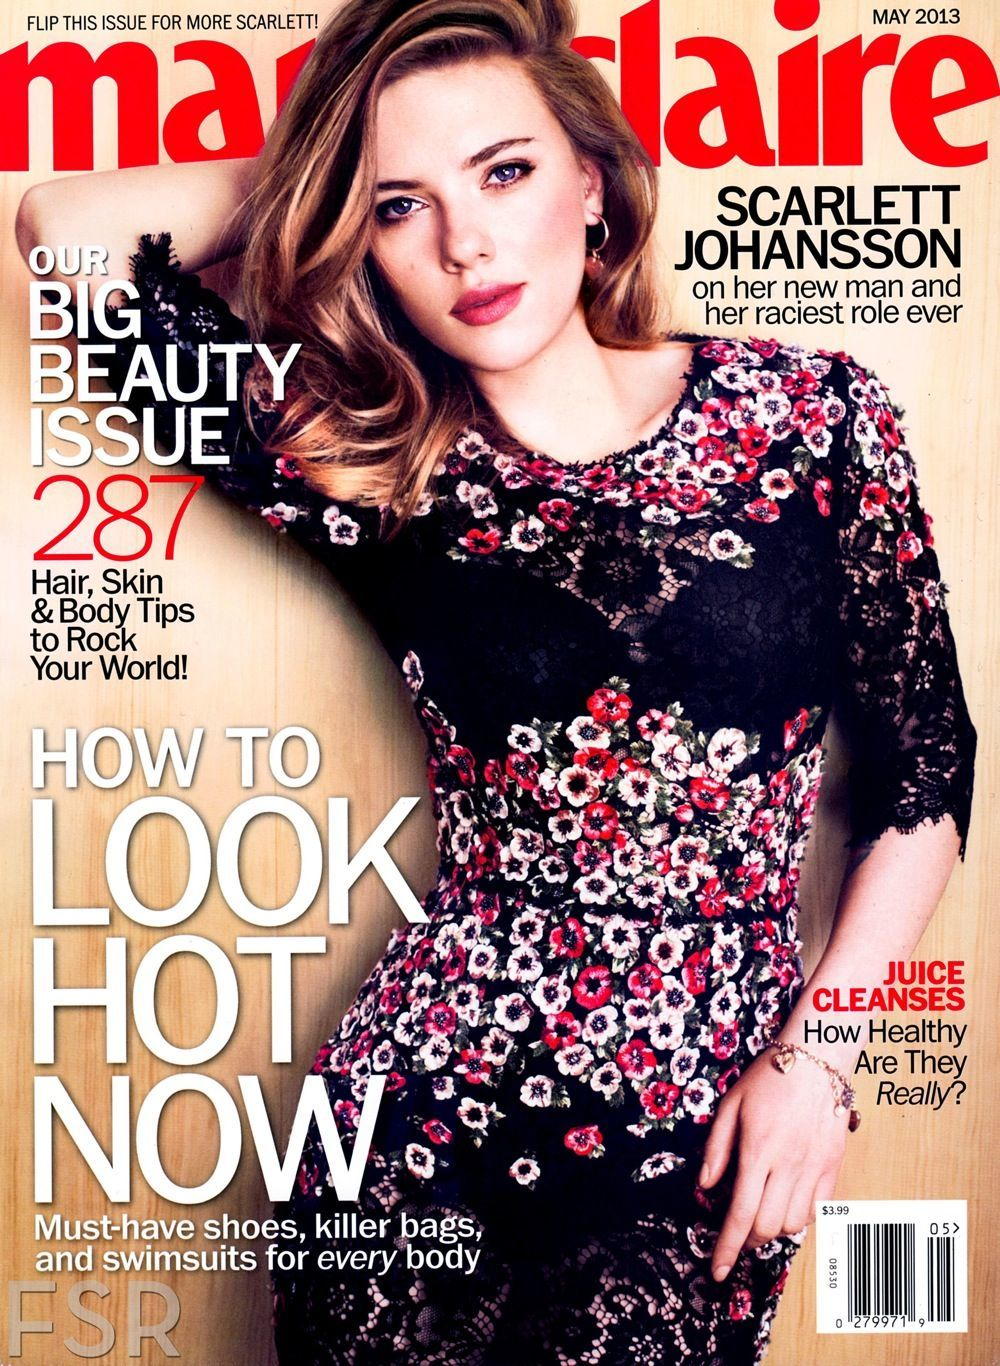 Fashion Magazines Nyc: May 2013 Fashion Magazine Covers